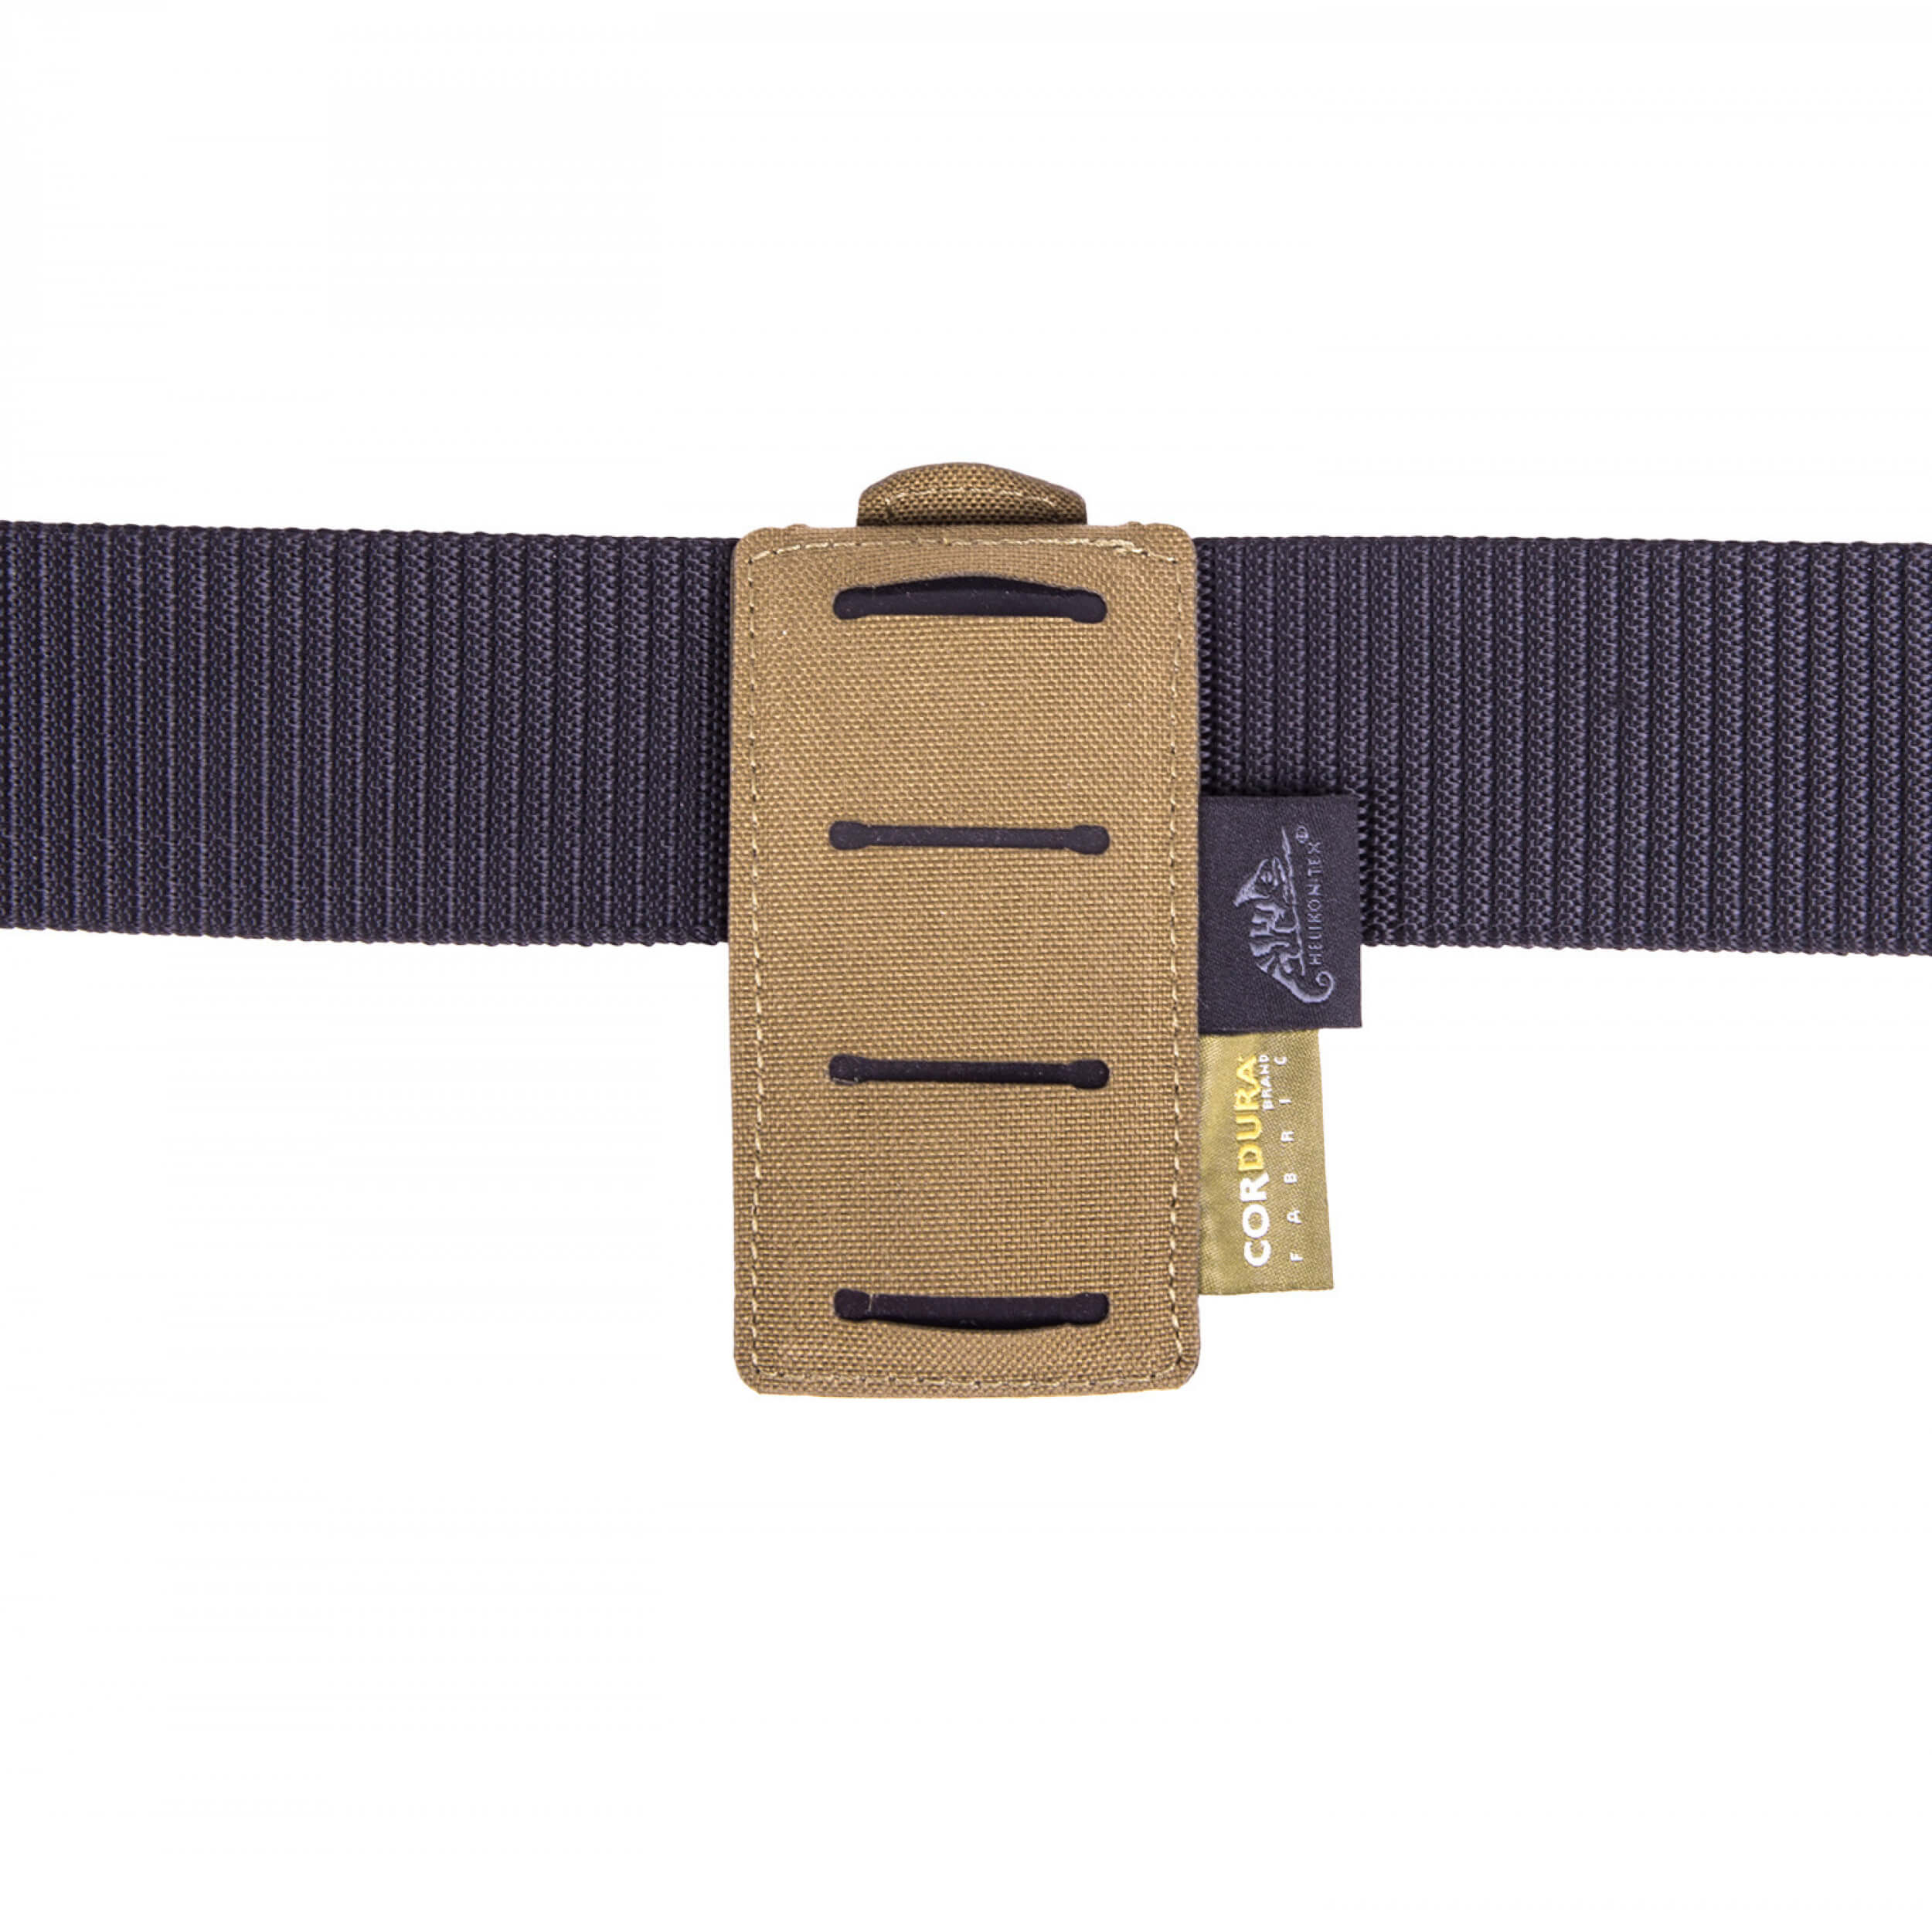 Helikon-Tex BMA Belt Molle Adapter 1 -Cordura- Coyote